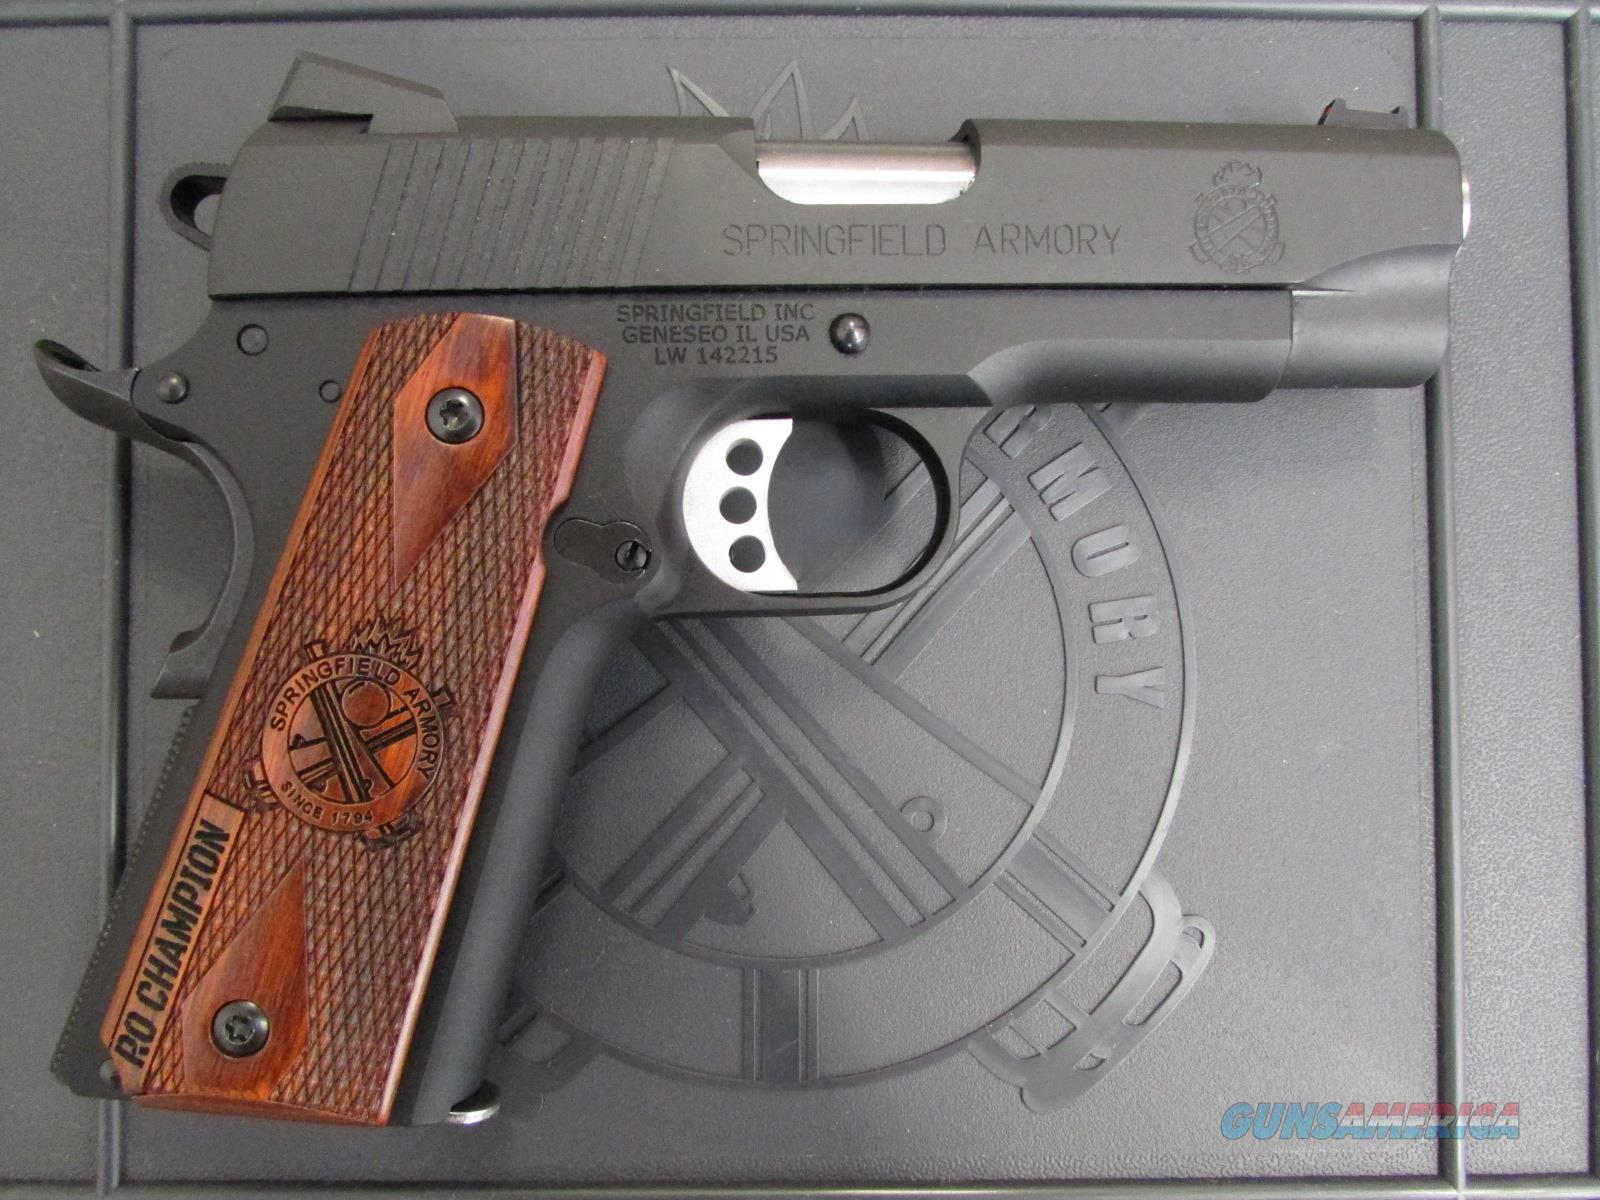 Springfield 1911 Range Officer Champion LW 9mm PI9137LP